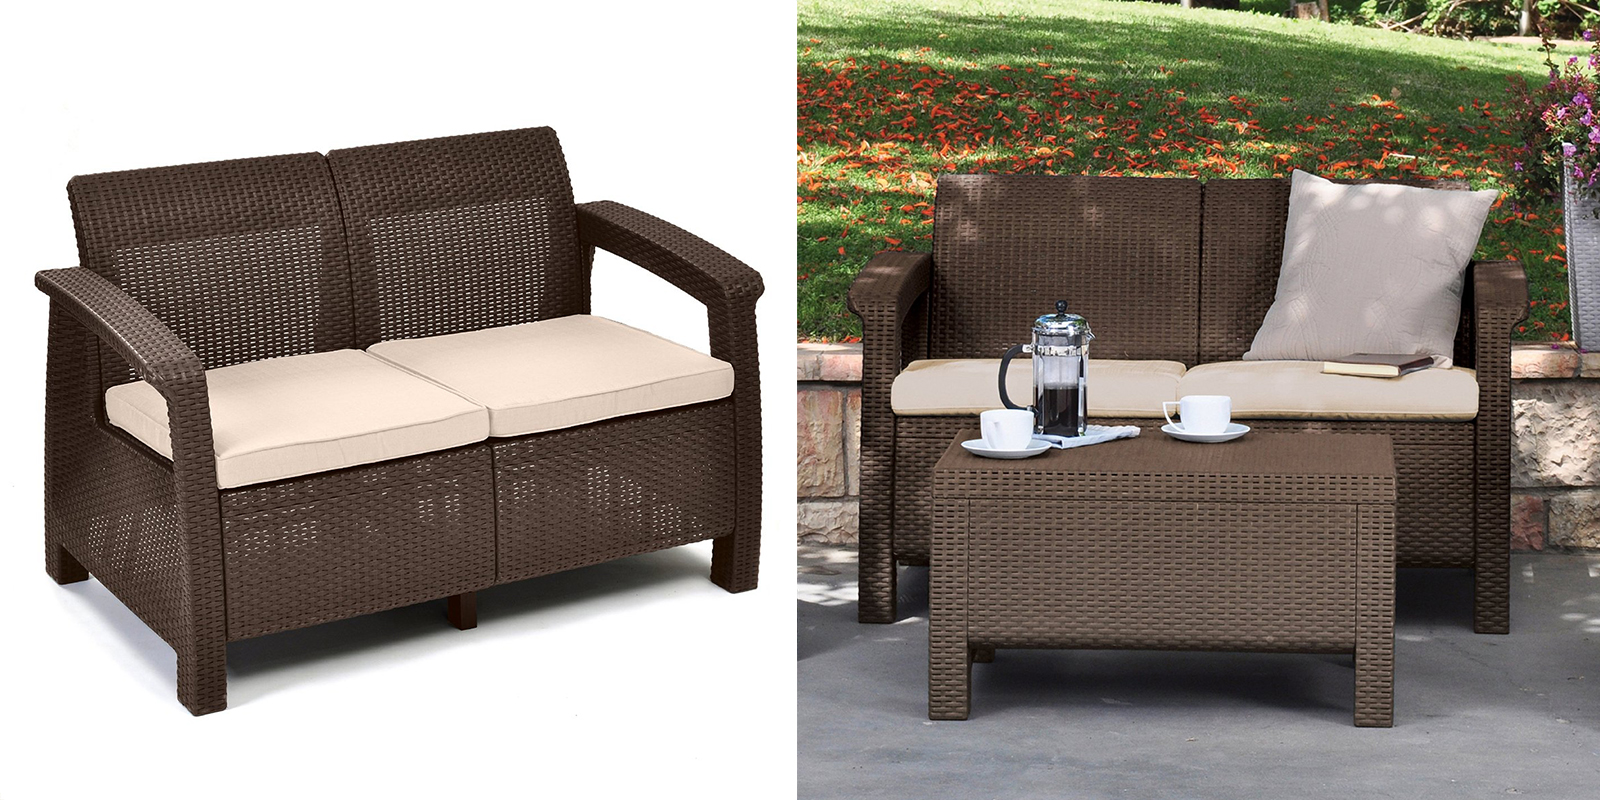 Patio Chair - All-Weather Love Seat with Cushions